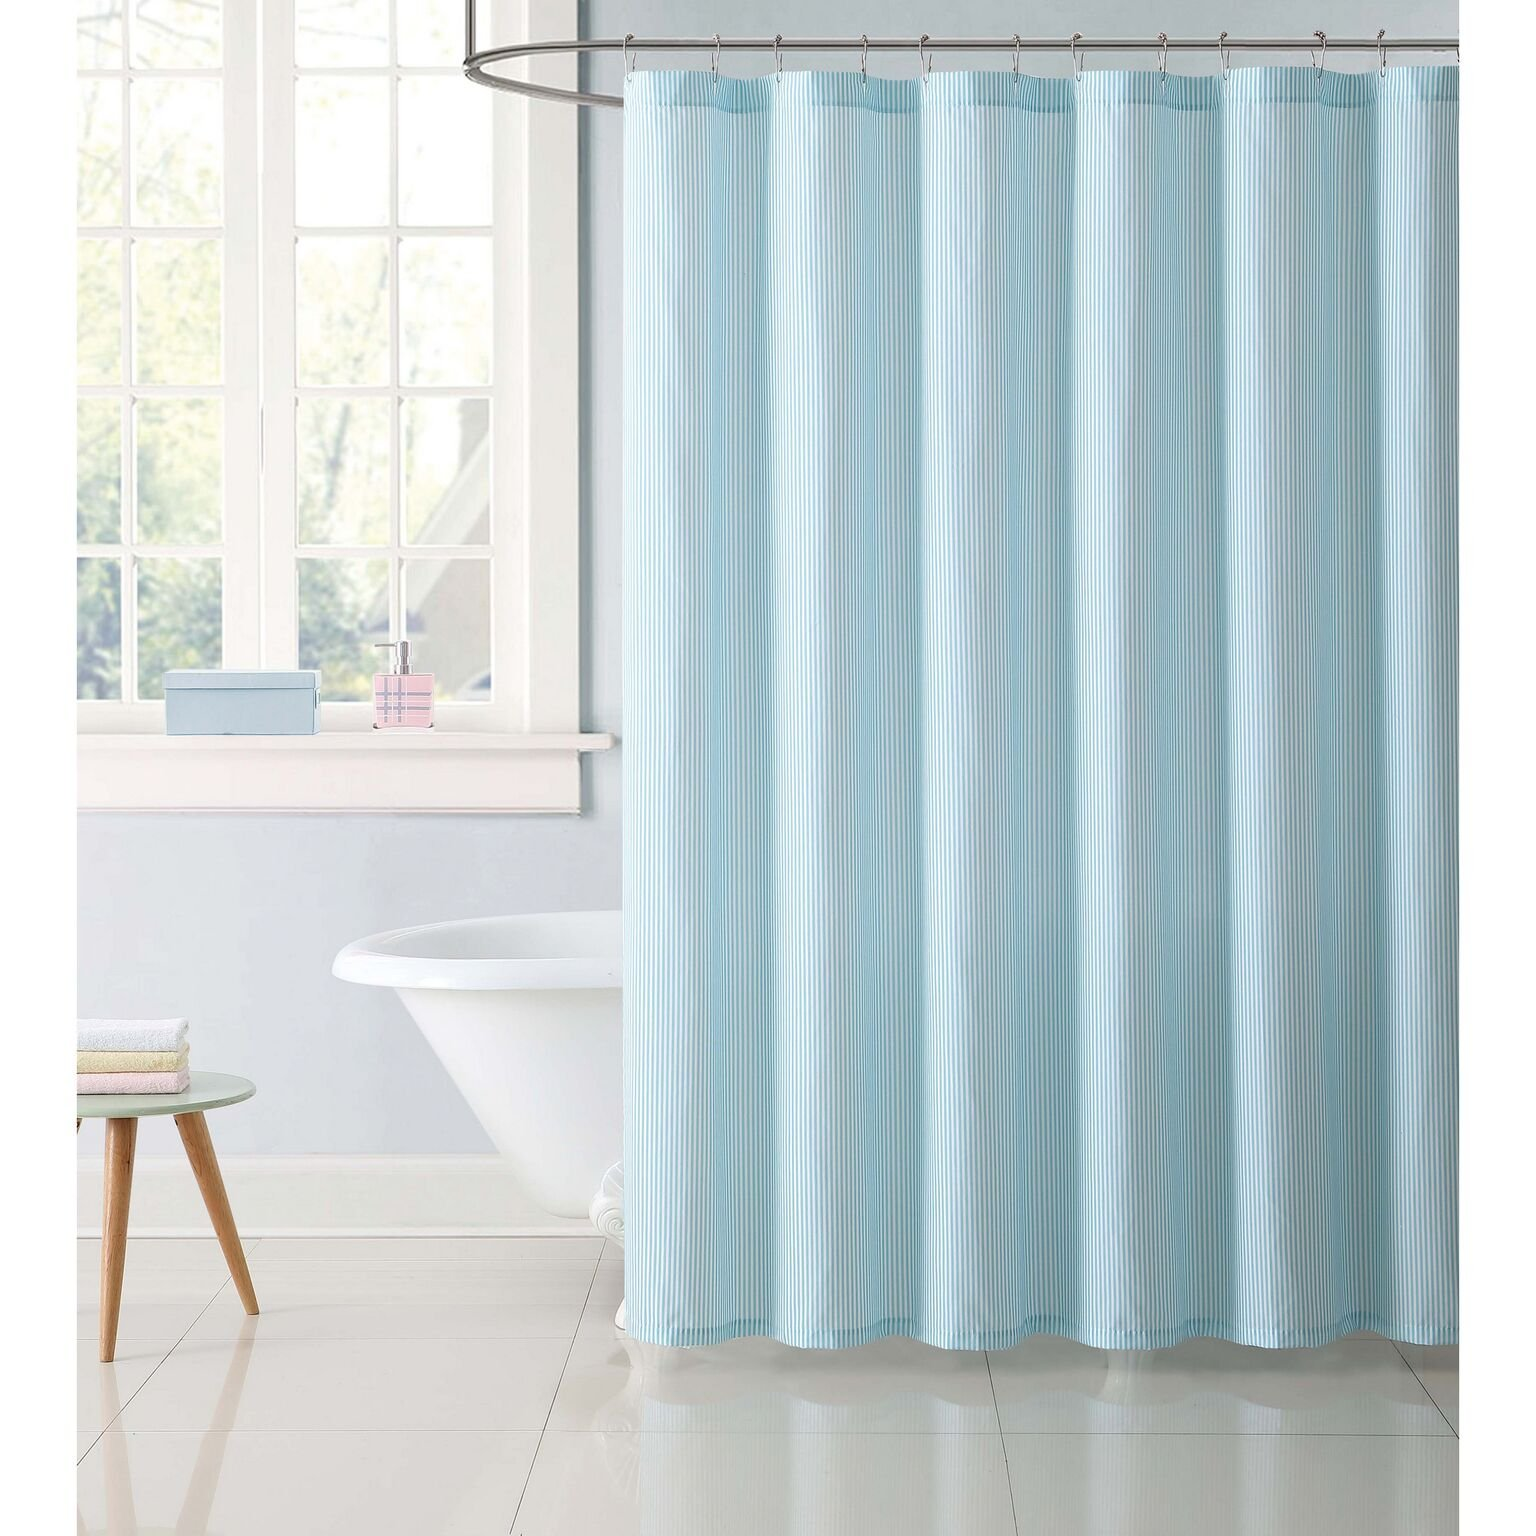 Truly Soft Aqua Stripes Shower Curtain, 72'' x 72''